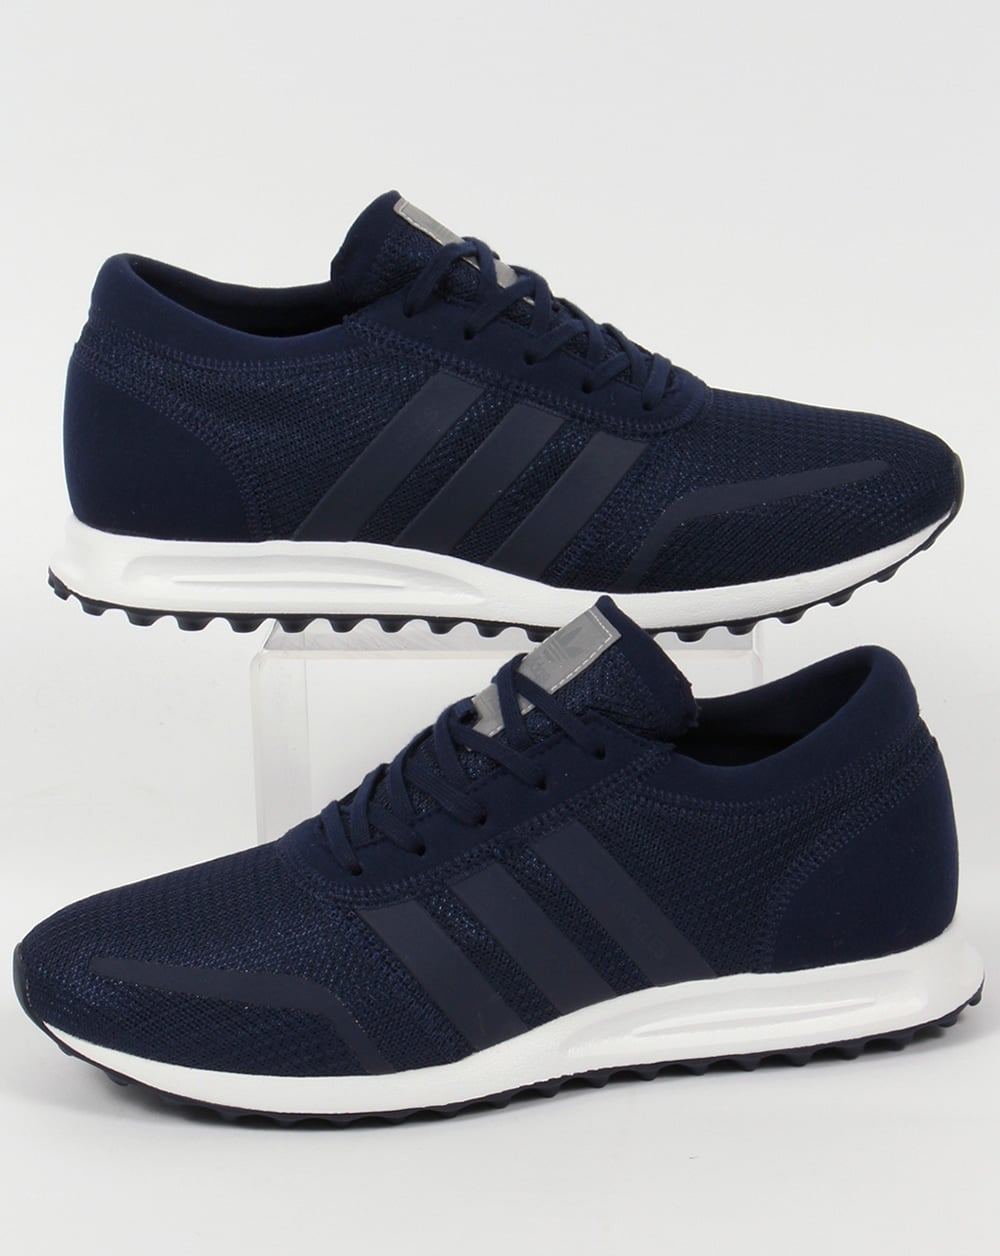 adidas los angeles trainers navy blue originals shoes mens. Black Bedroom Furniture Sets. Home Design Ideas